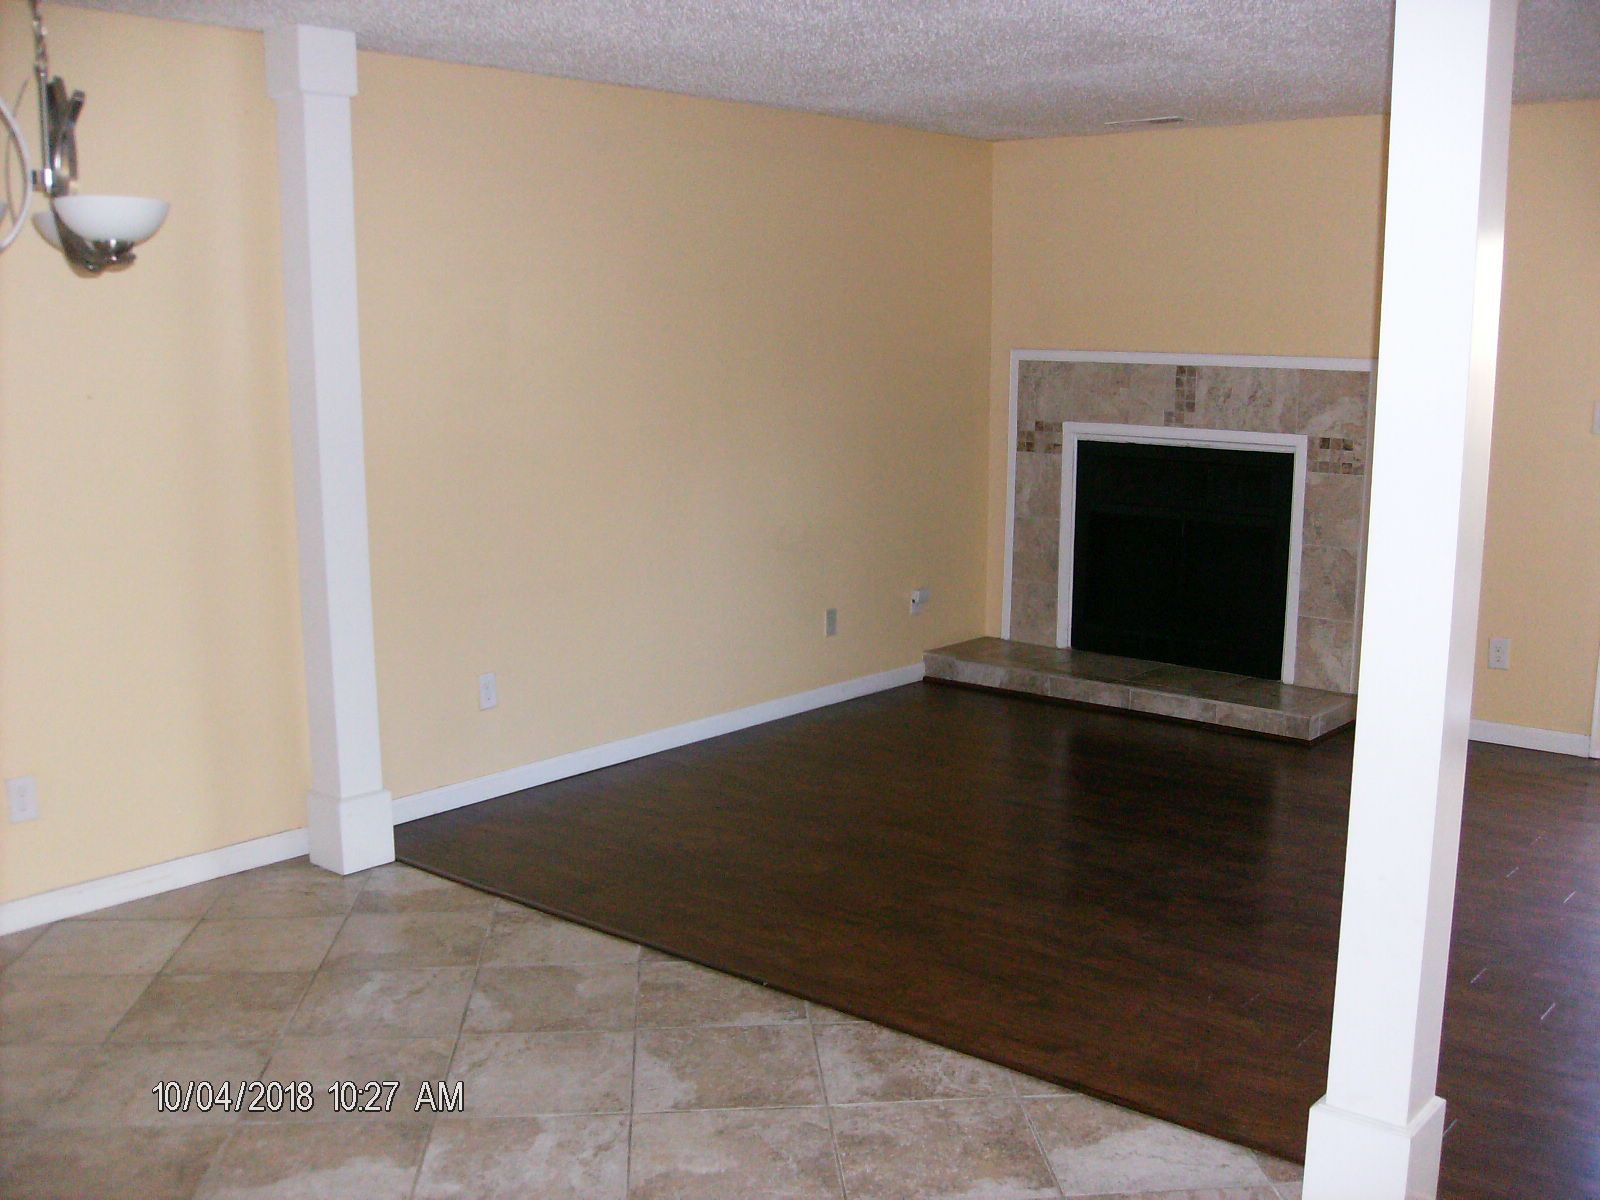 Councill Realty Management Property Management Homes For Rent